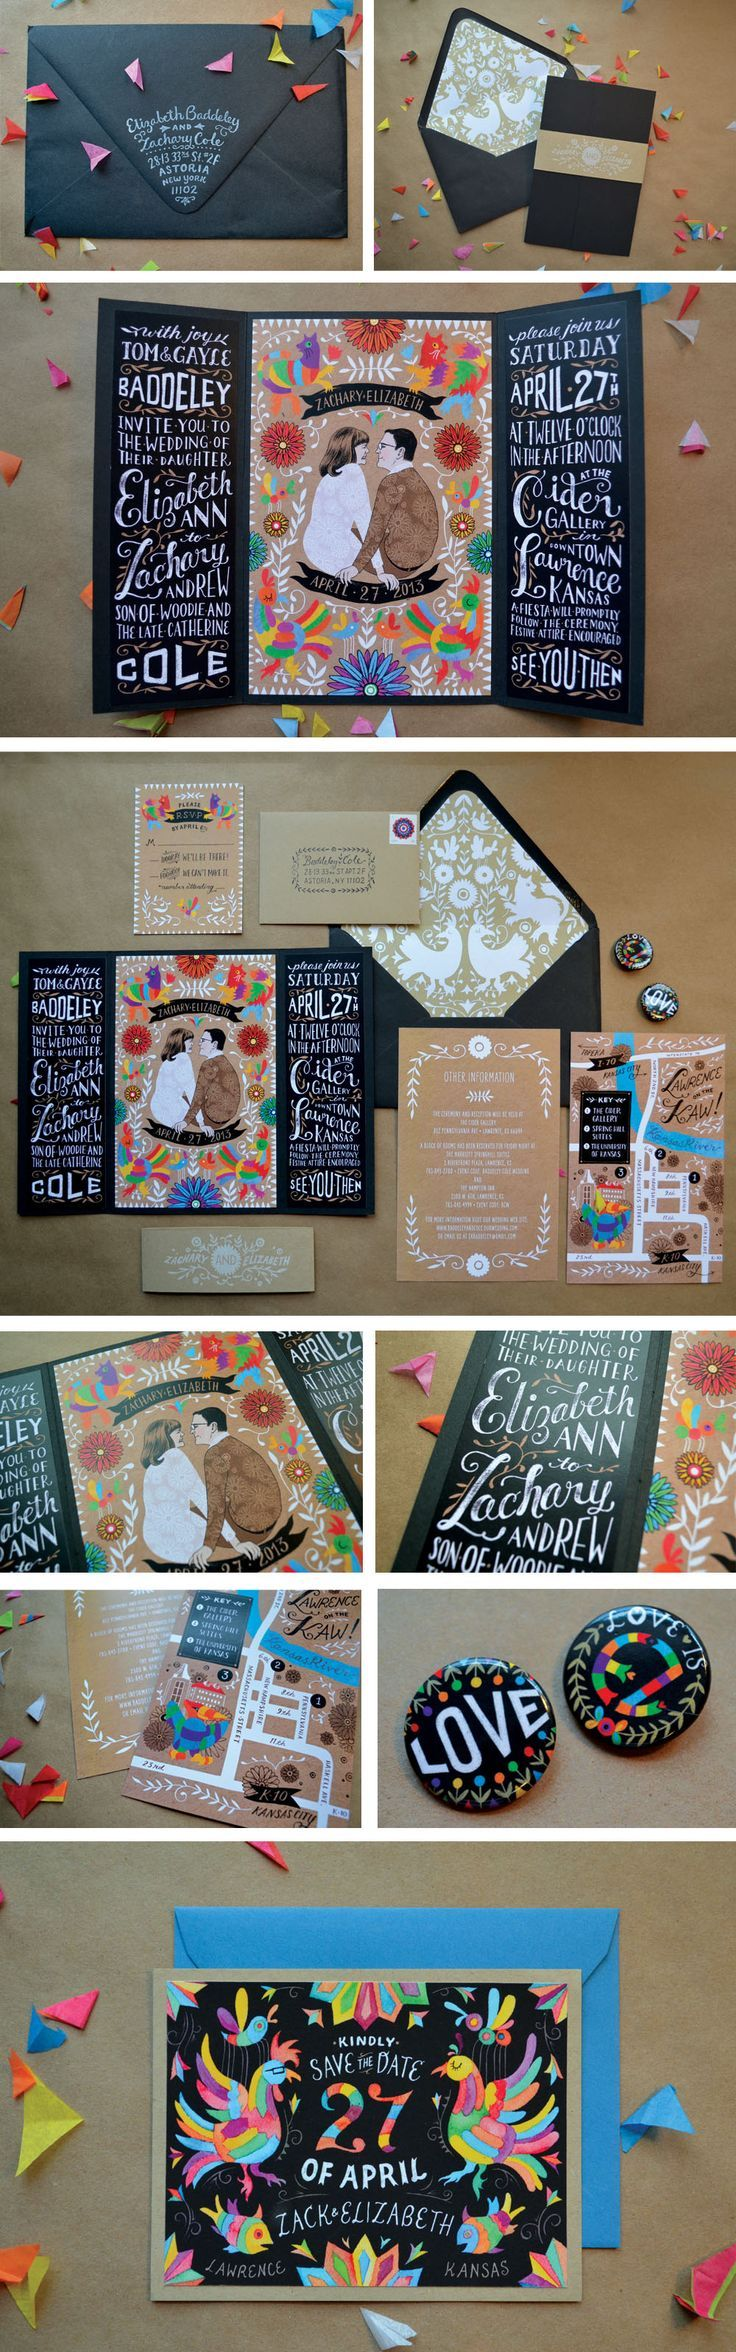 Beautiful wedding invitation / collateral / white printing on black paper & kraft paper